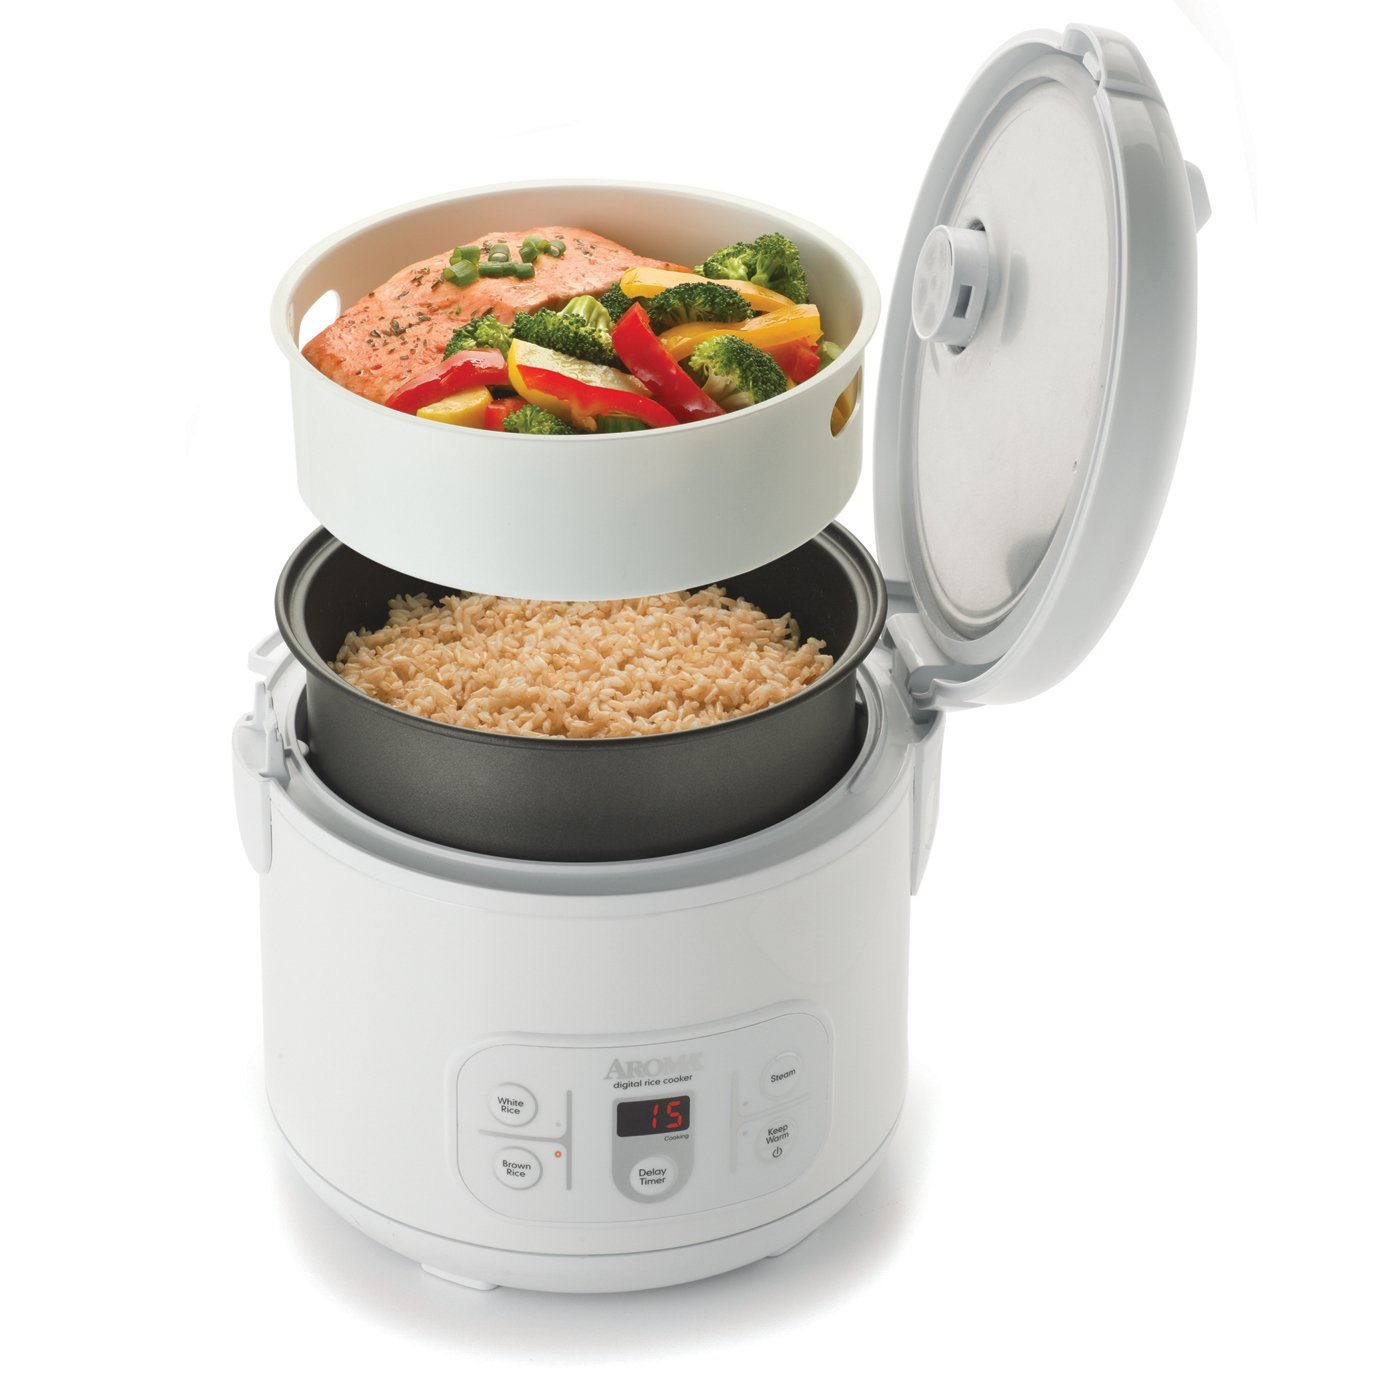 Amazon.com: Aroma Housewares ARC-996 6-Cup (Uncooked) 12-Cup (Cooked)  Digital Rice Cooker and Food Steamer, White: Kitchen & Dining